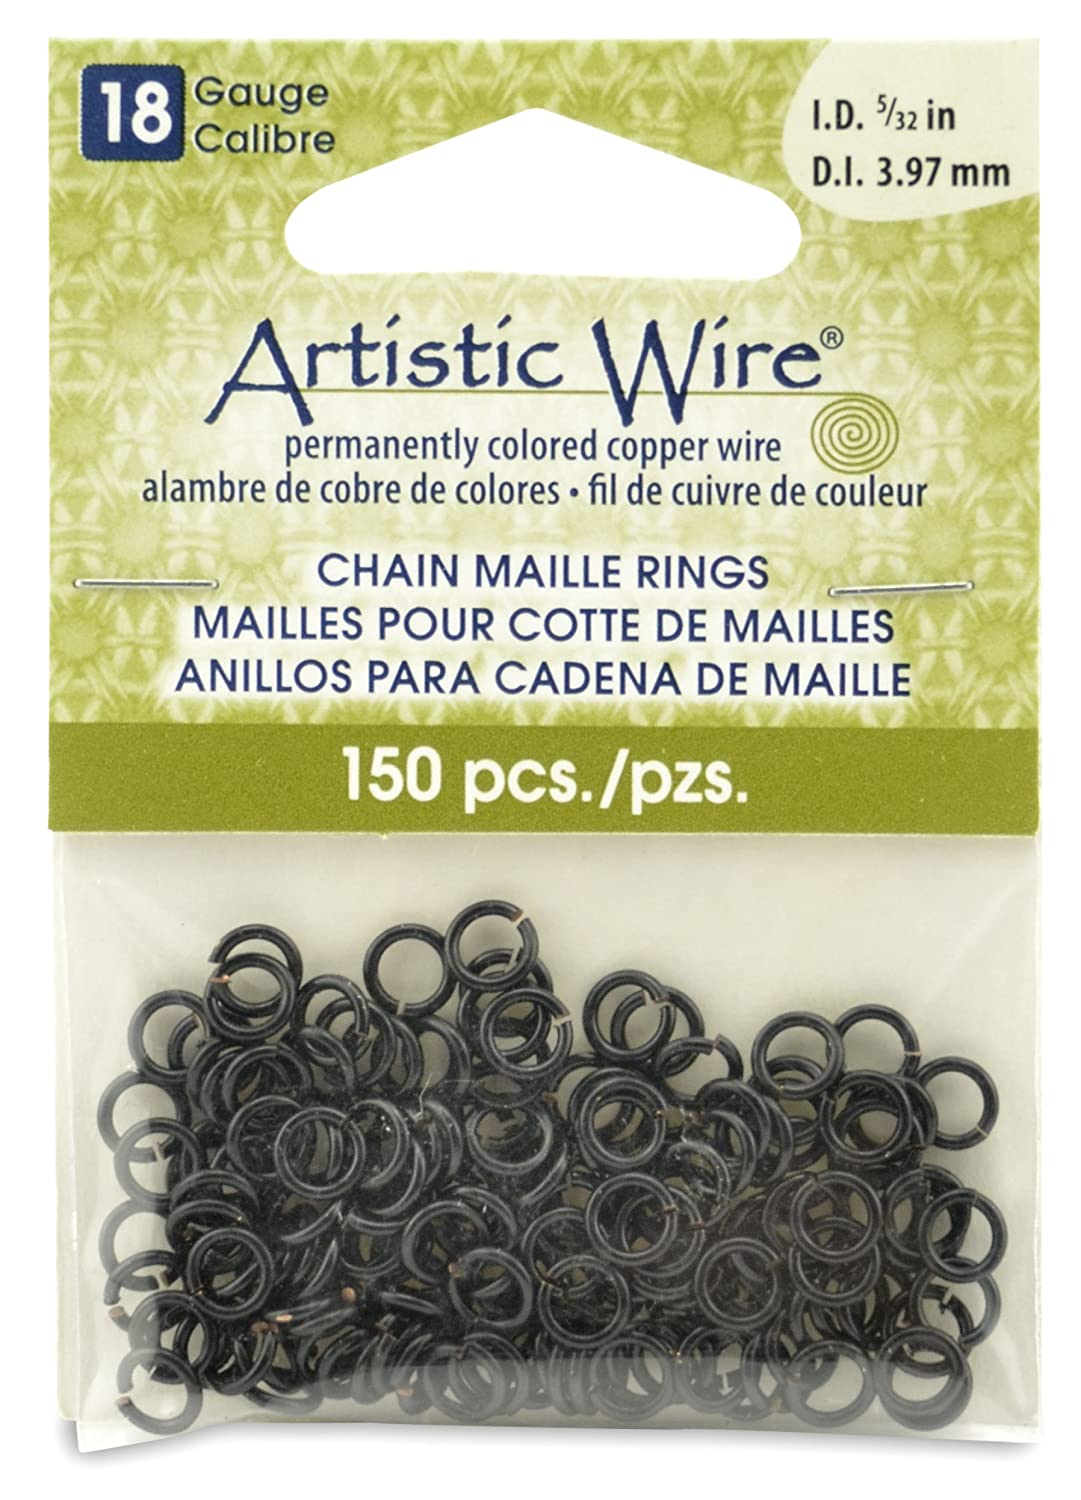 Artistic Wire Beadalon 9/64-inch 150 Piece 18-Gauge Chain Maille Rings, Black A314-18-02-06